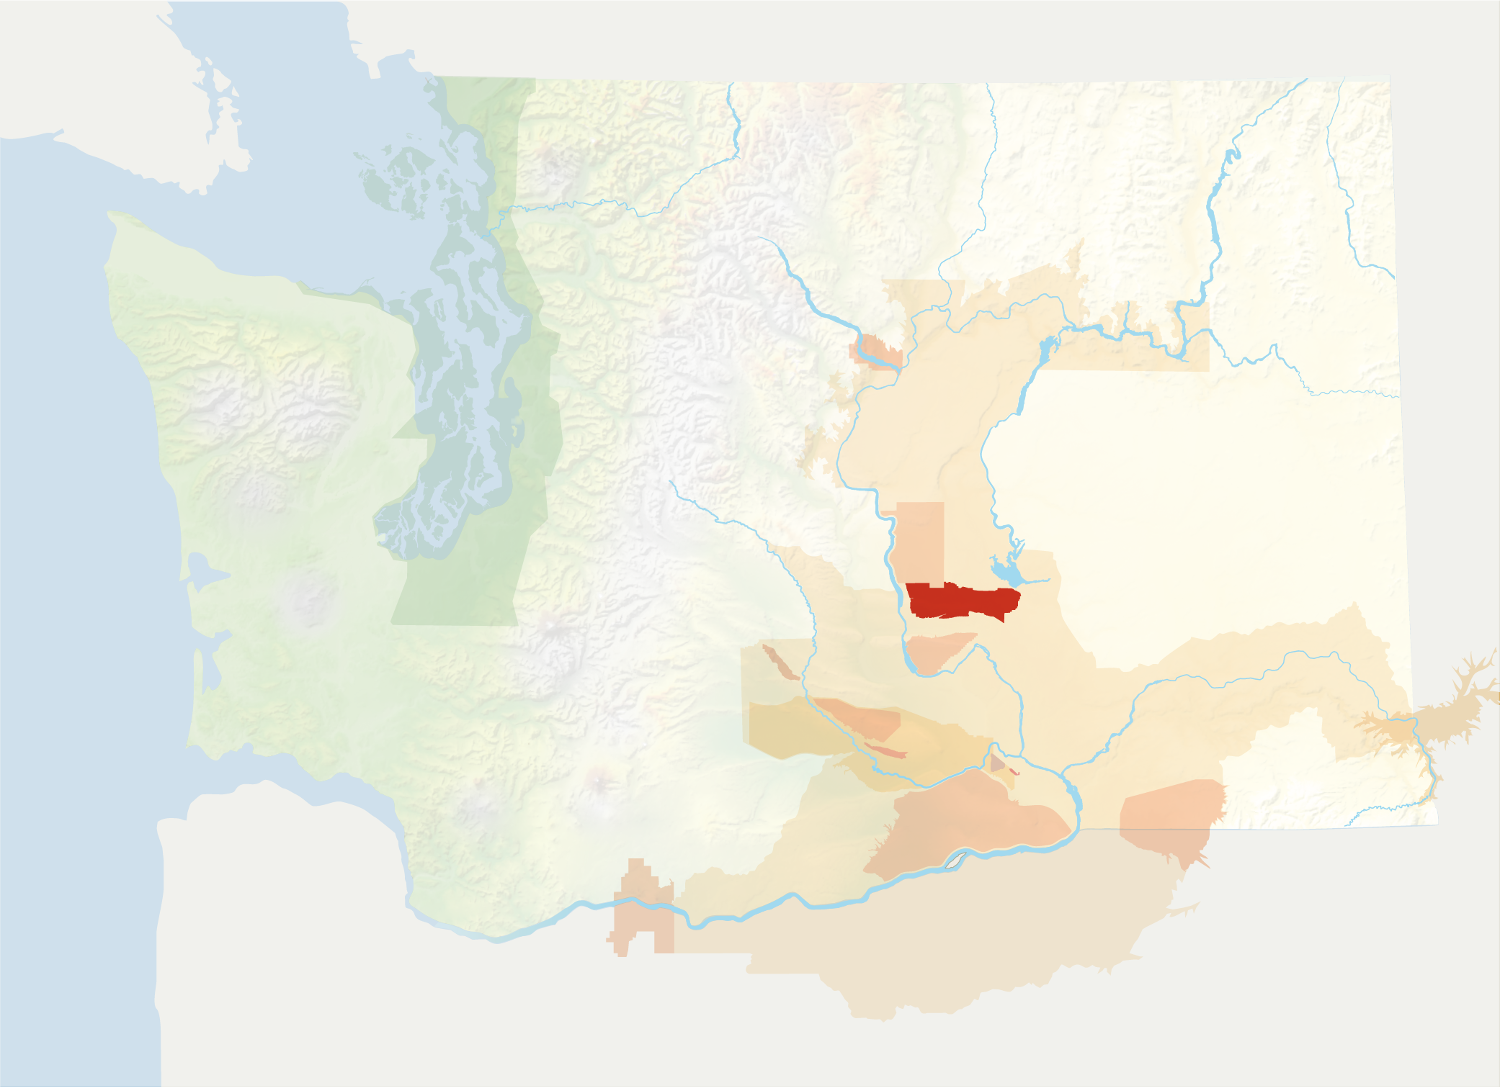 Map of Washington with the Royal Slope AVA in red, surrounded by the rest of the AVAs in muted greens and oranges.